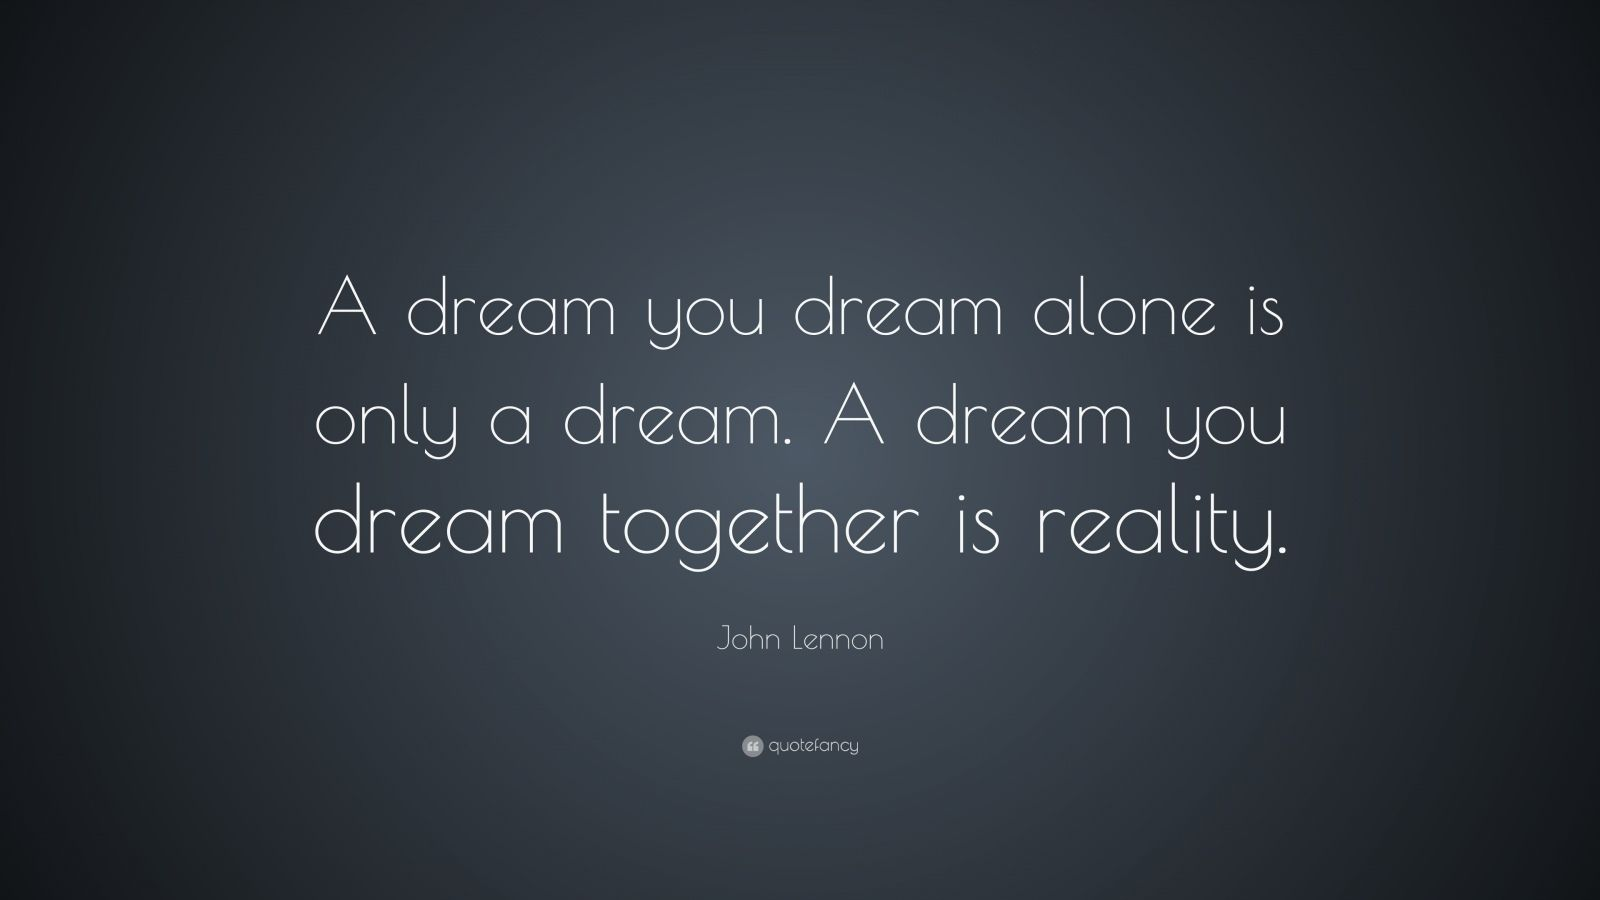 John Lennon Quote A Dream You Dream Alone Is Only A Dream A Dream